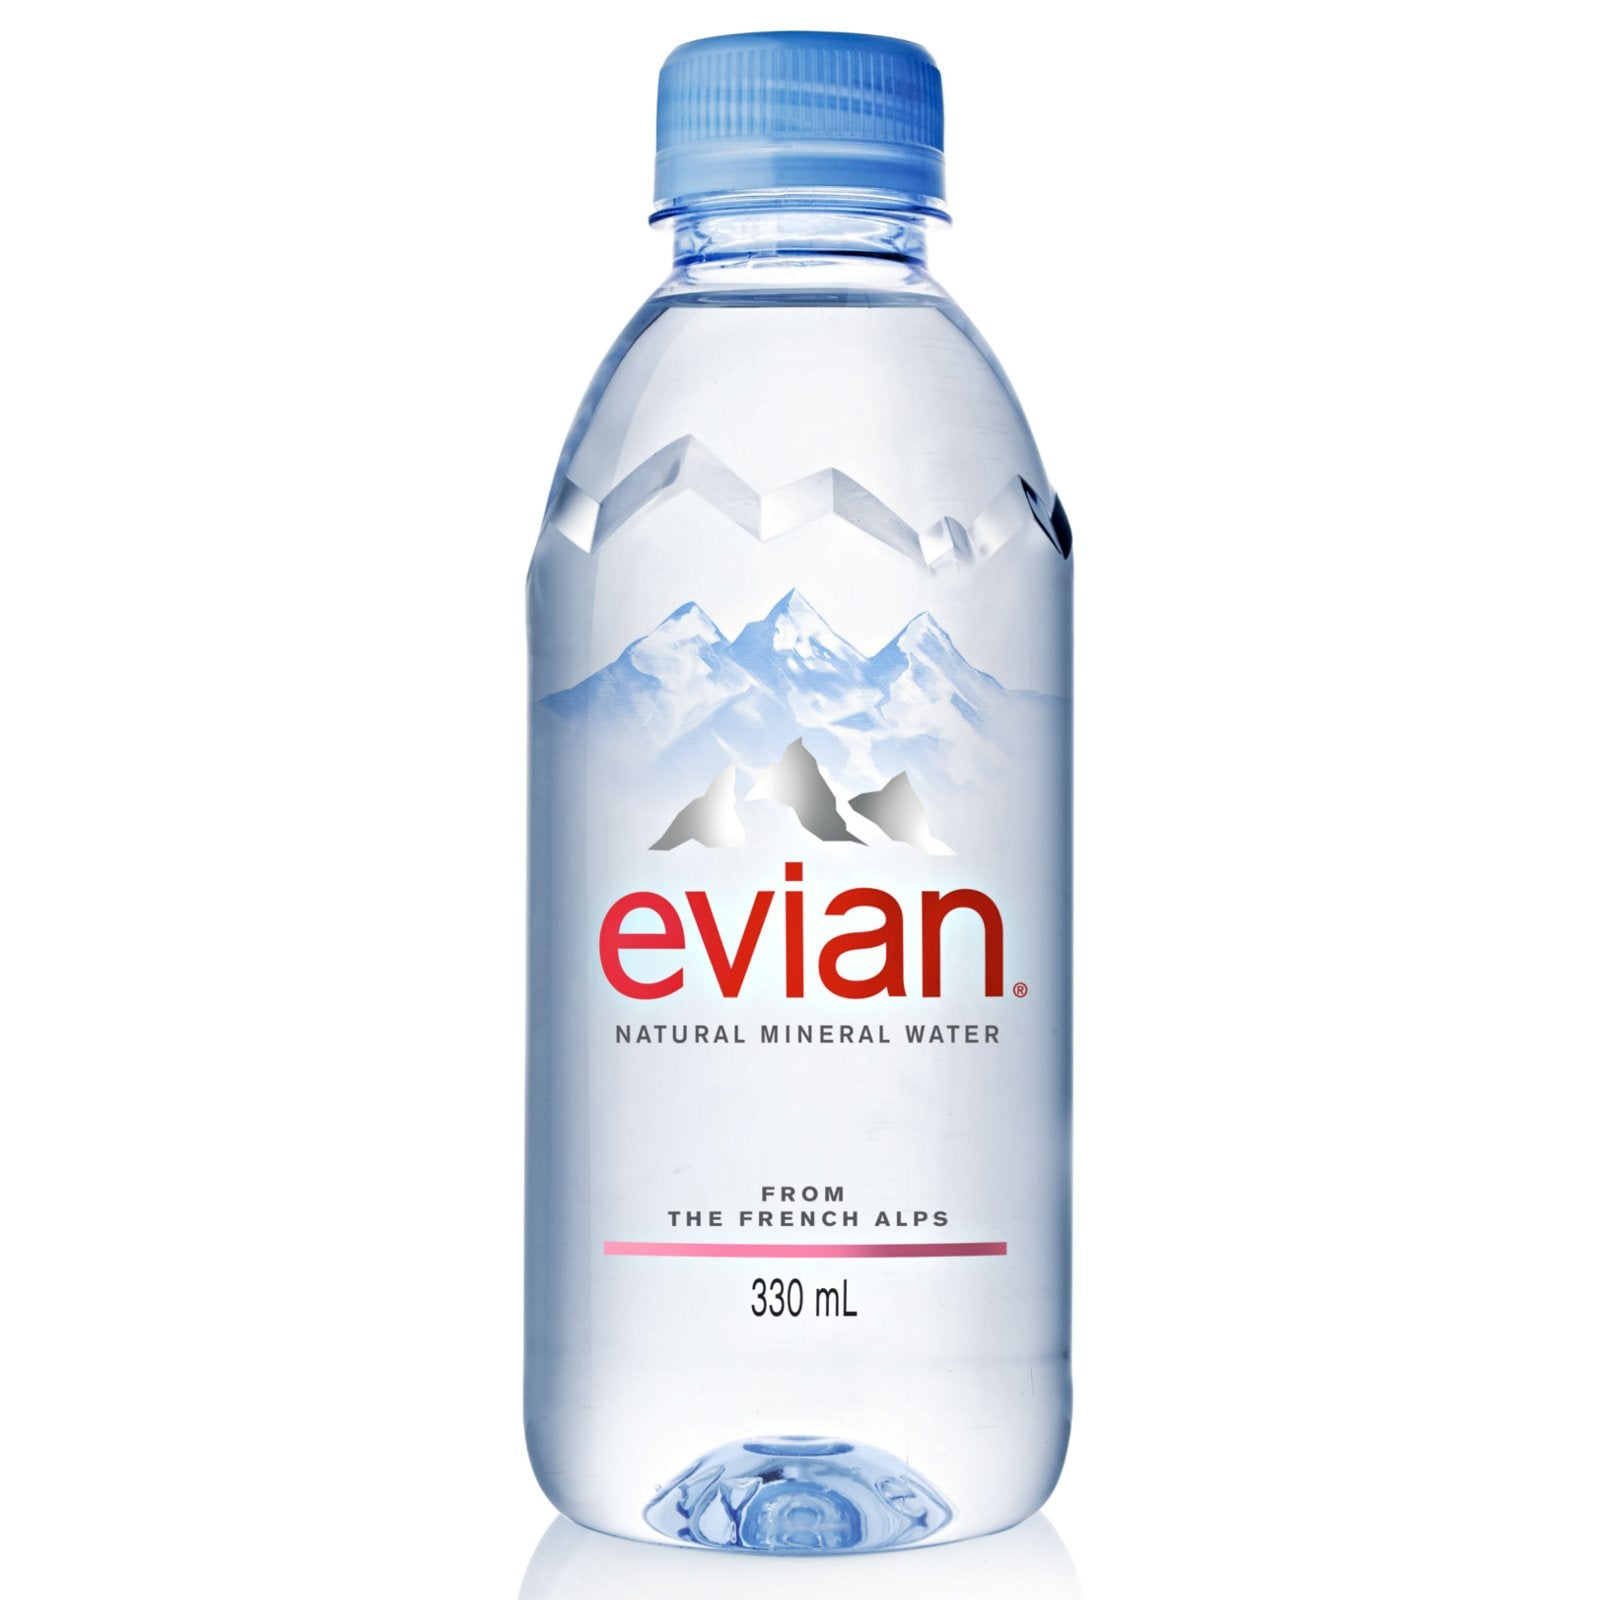 stl>Evian 330 ml - 24 Pack